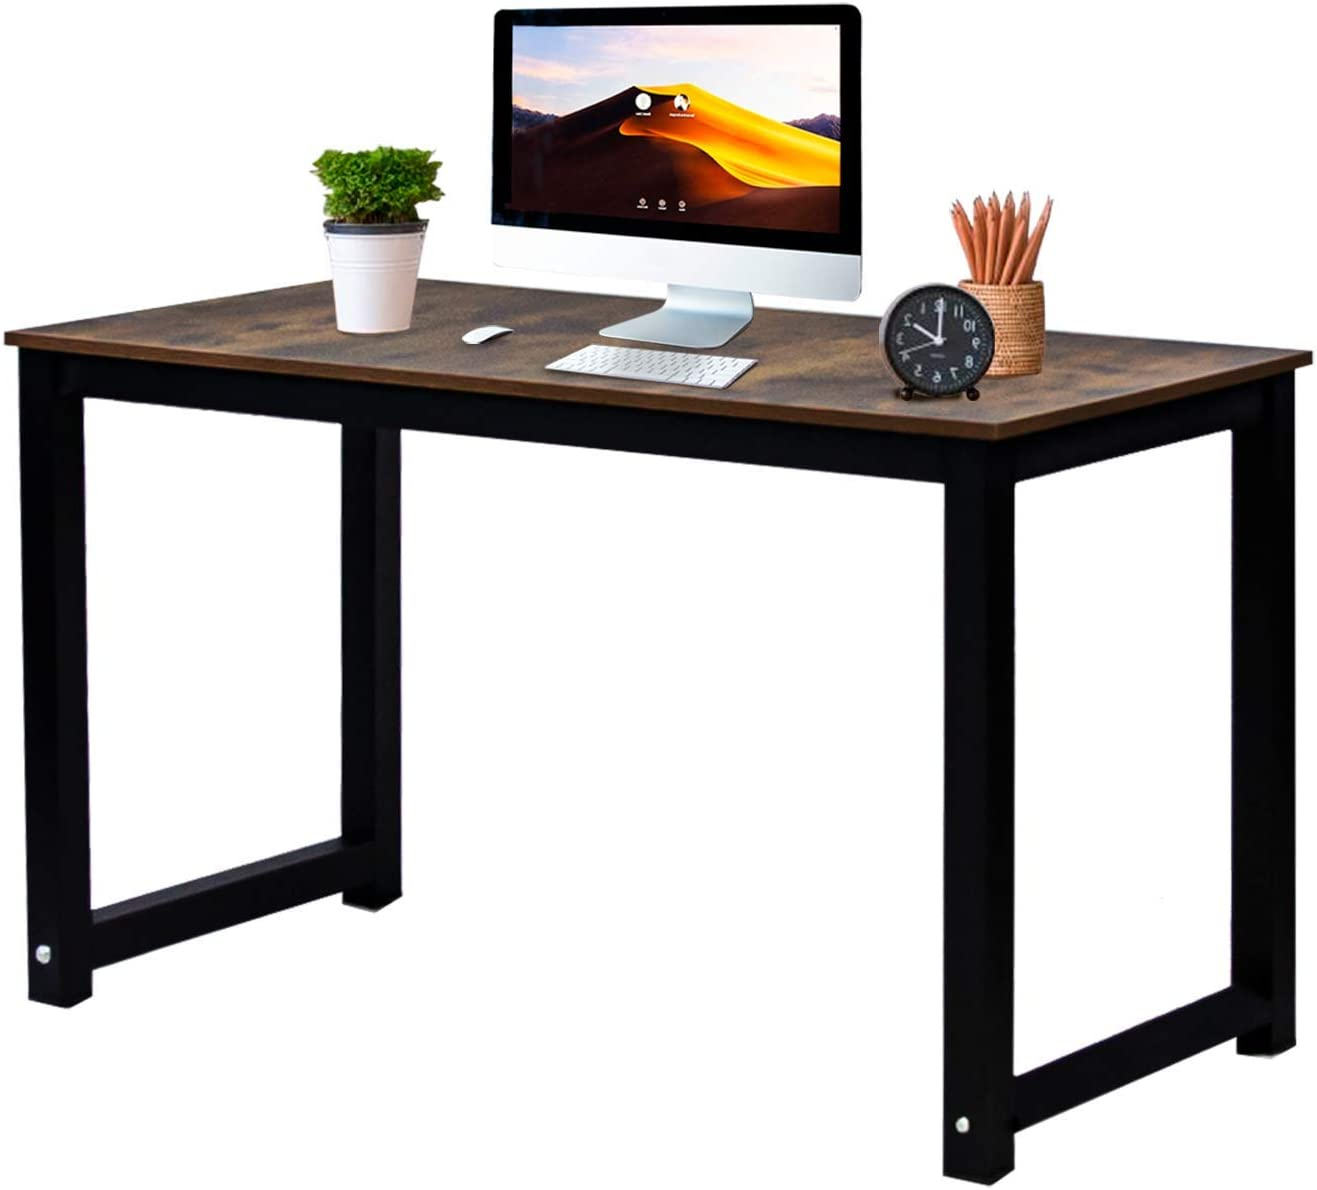 Jerry /& Maggie Sturdy Desktop Length 47 Professional Office Desk Wood /& Steel Table Modern Plain Lap Desk with Rectangular Legs Computer Desk Personal Working Space Rustic Wood Tone